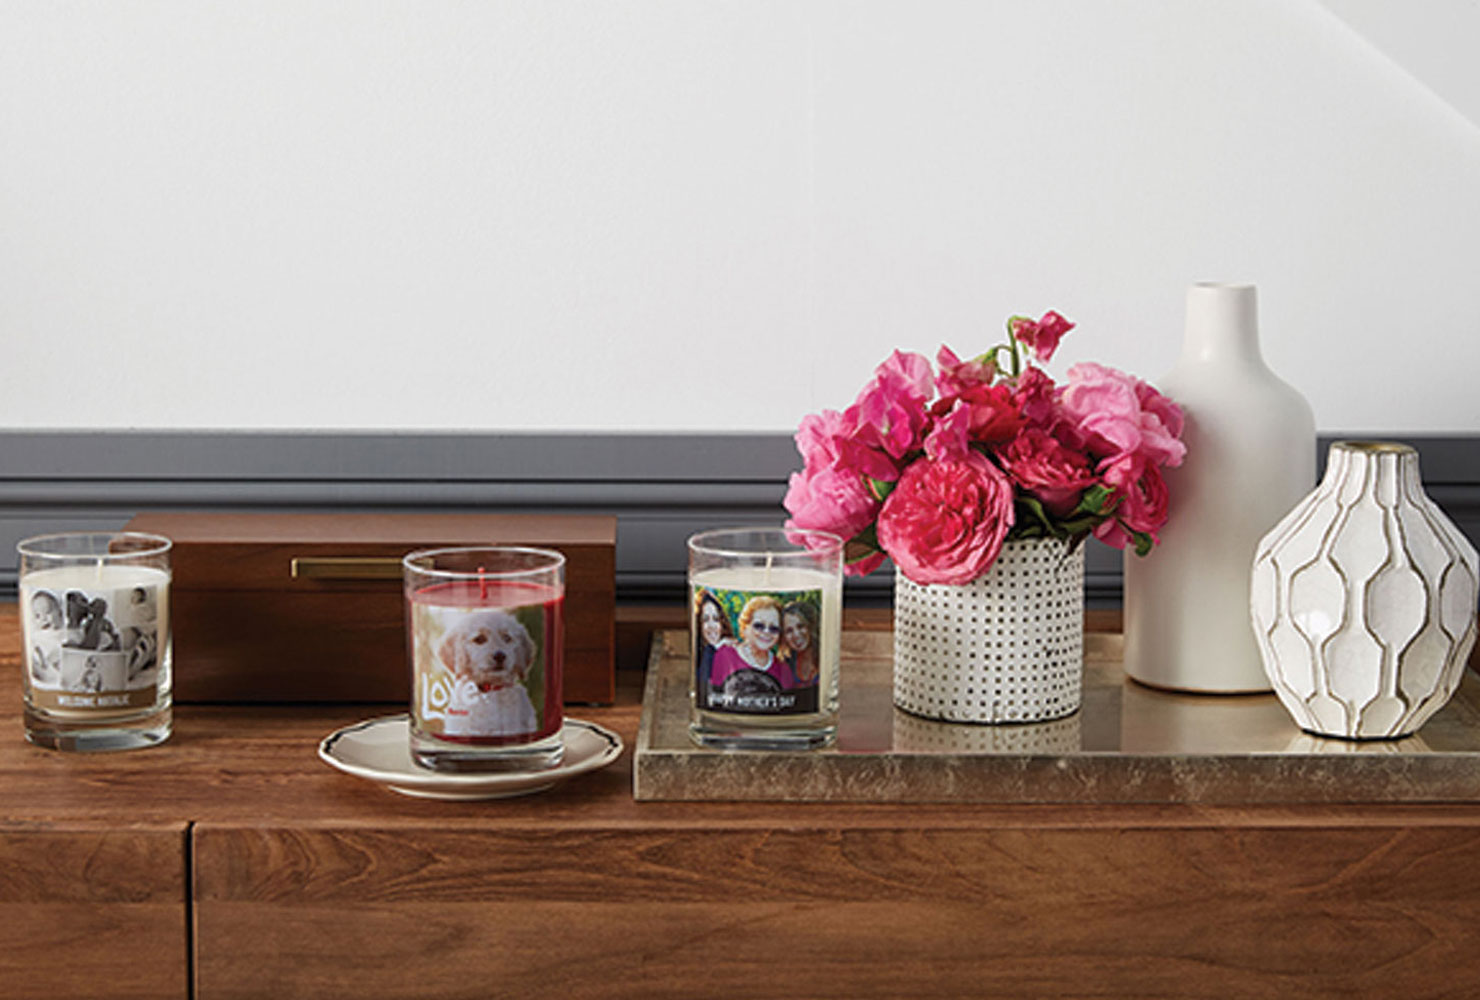 Candle collection and decor on wood table.